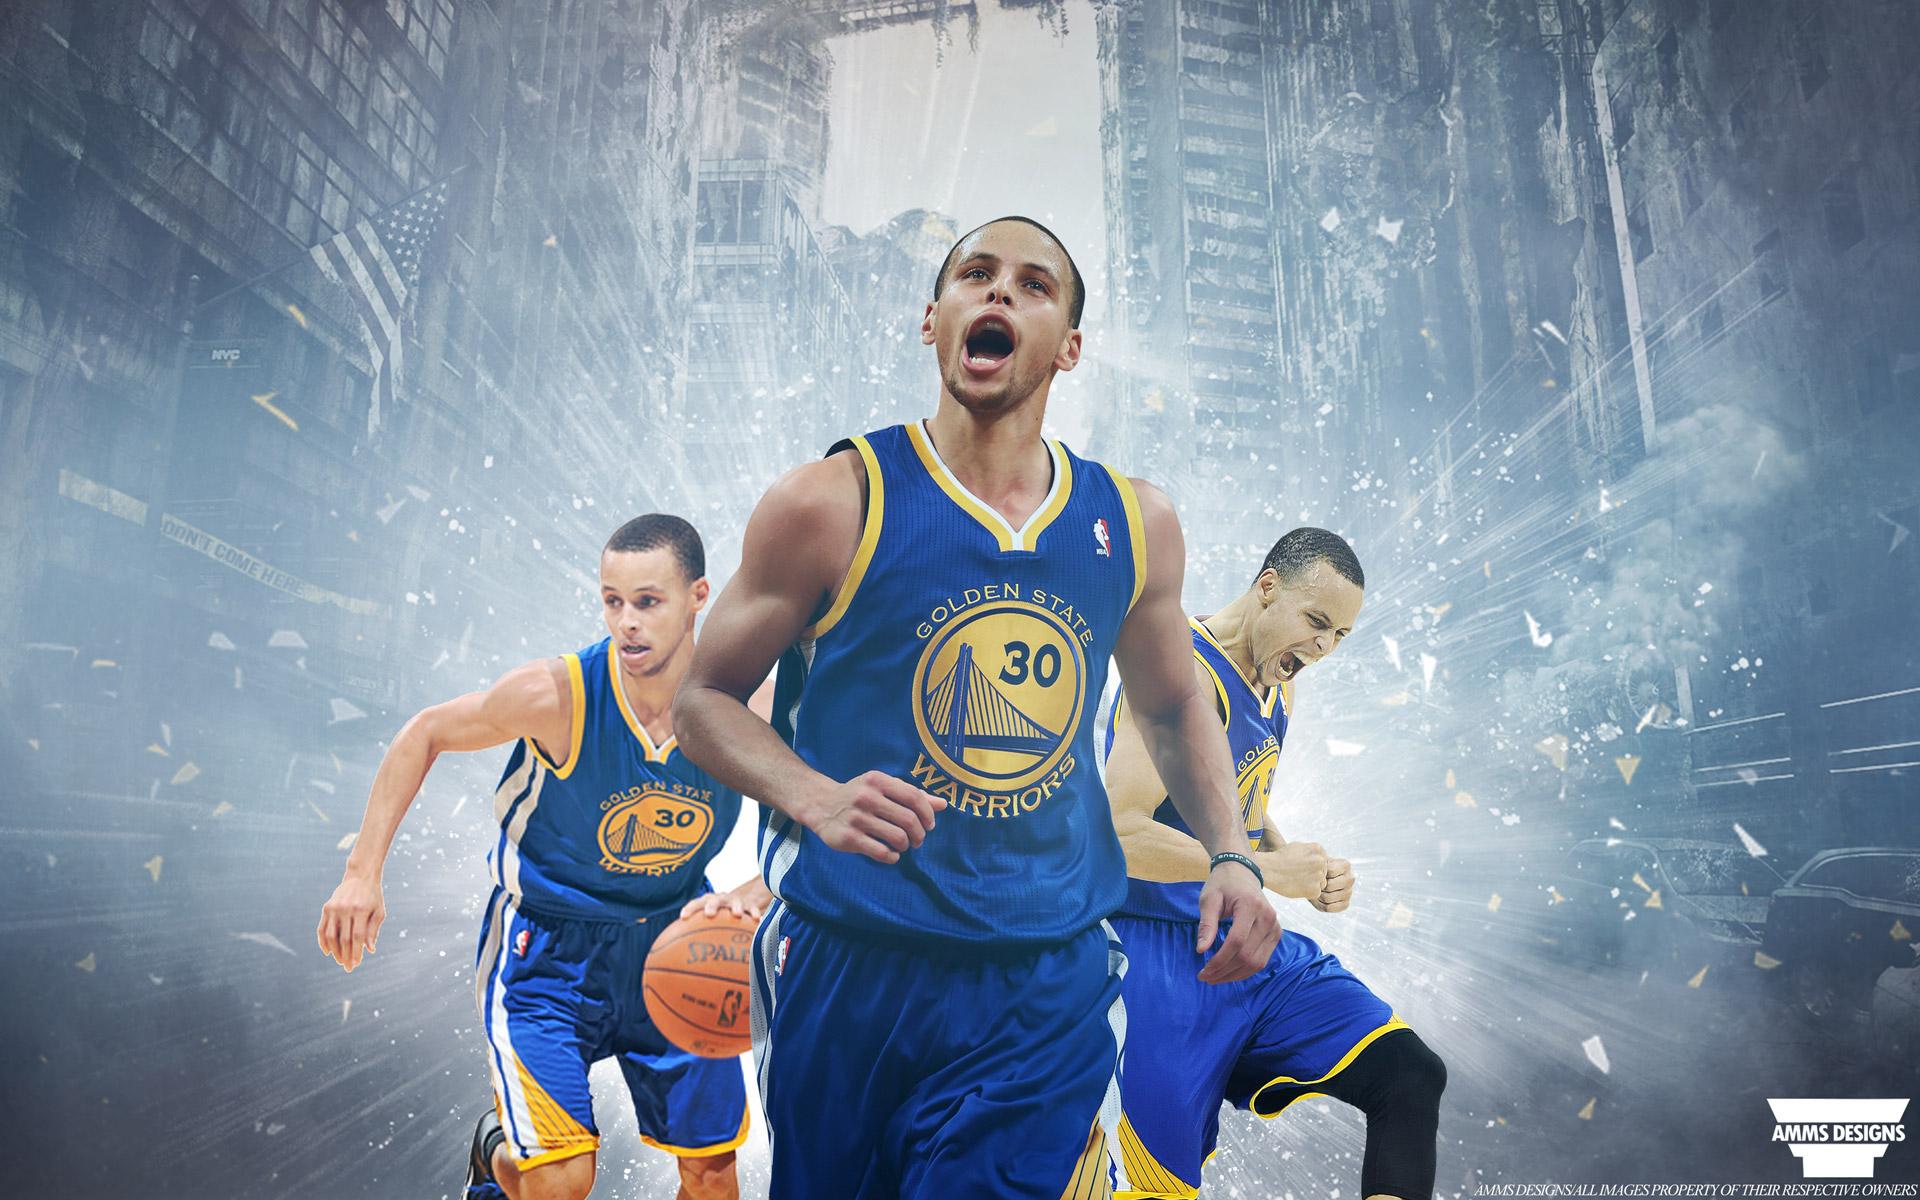 Simple Wallpaper Mac Stephen Curry - stephen-curry-backgrounds-21  Trends_47613.jpg